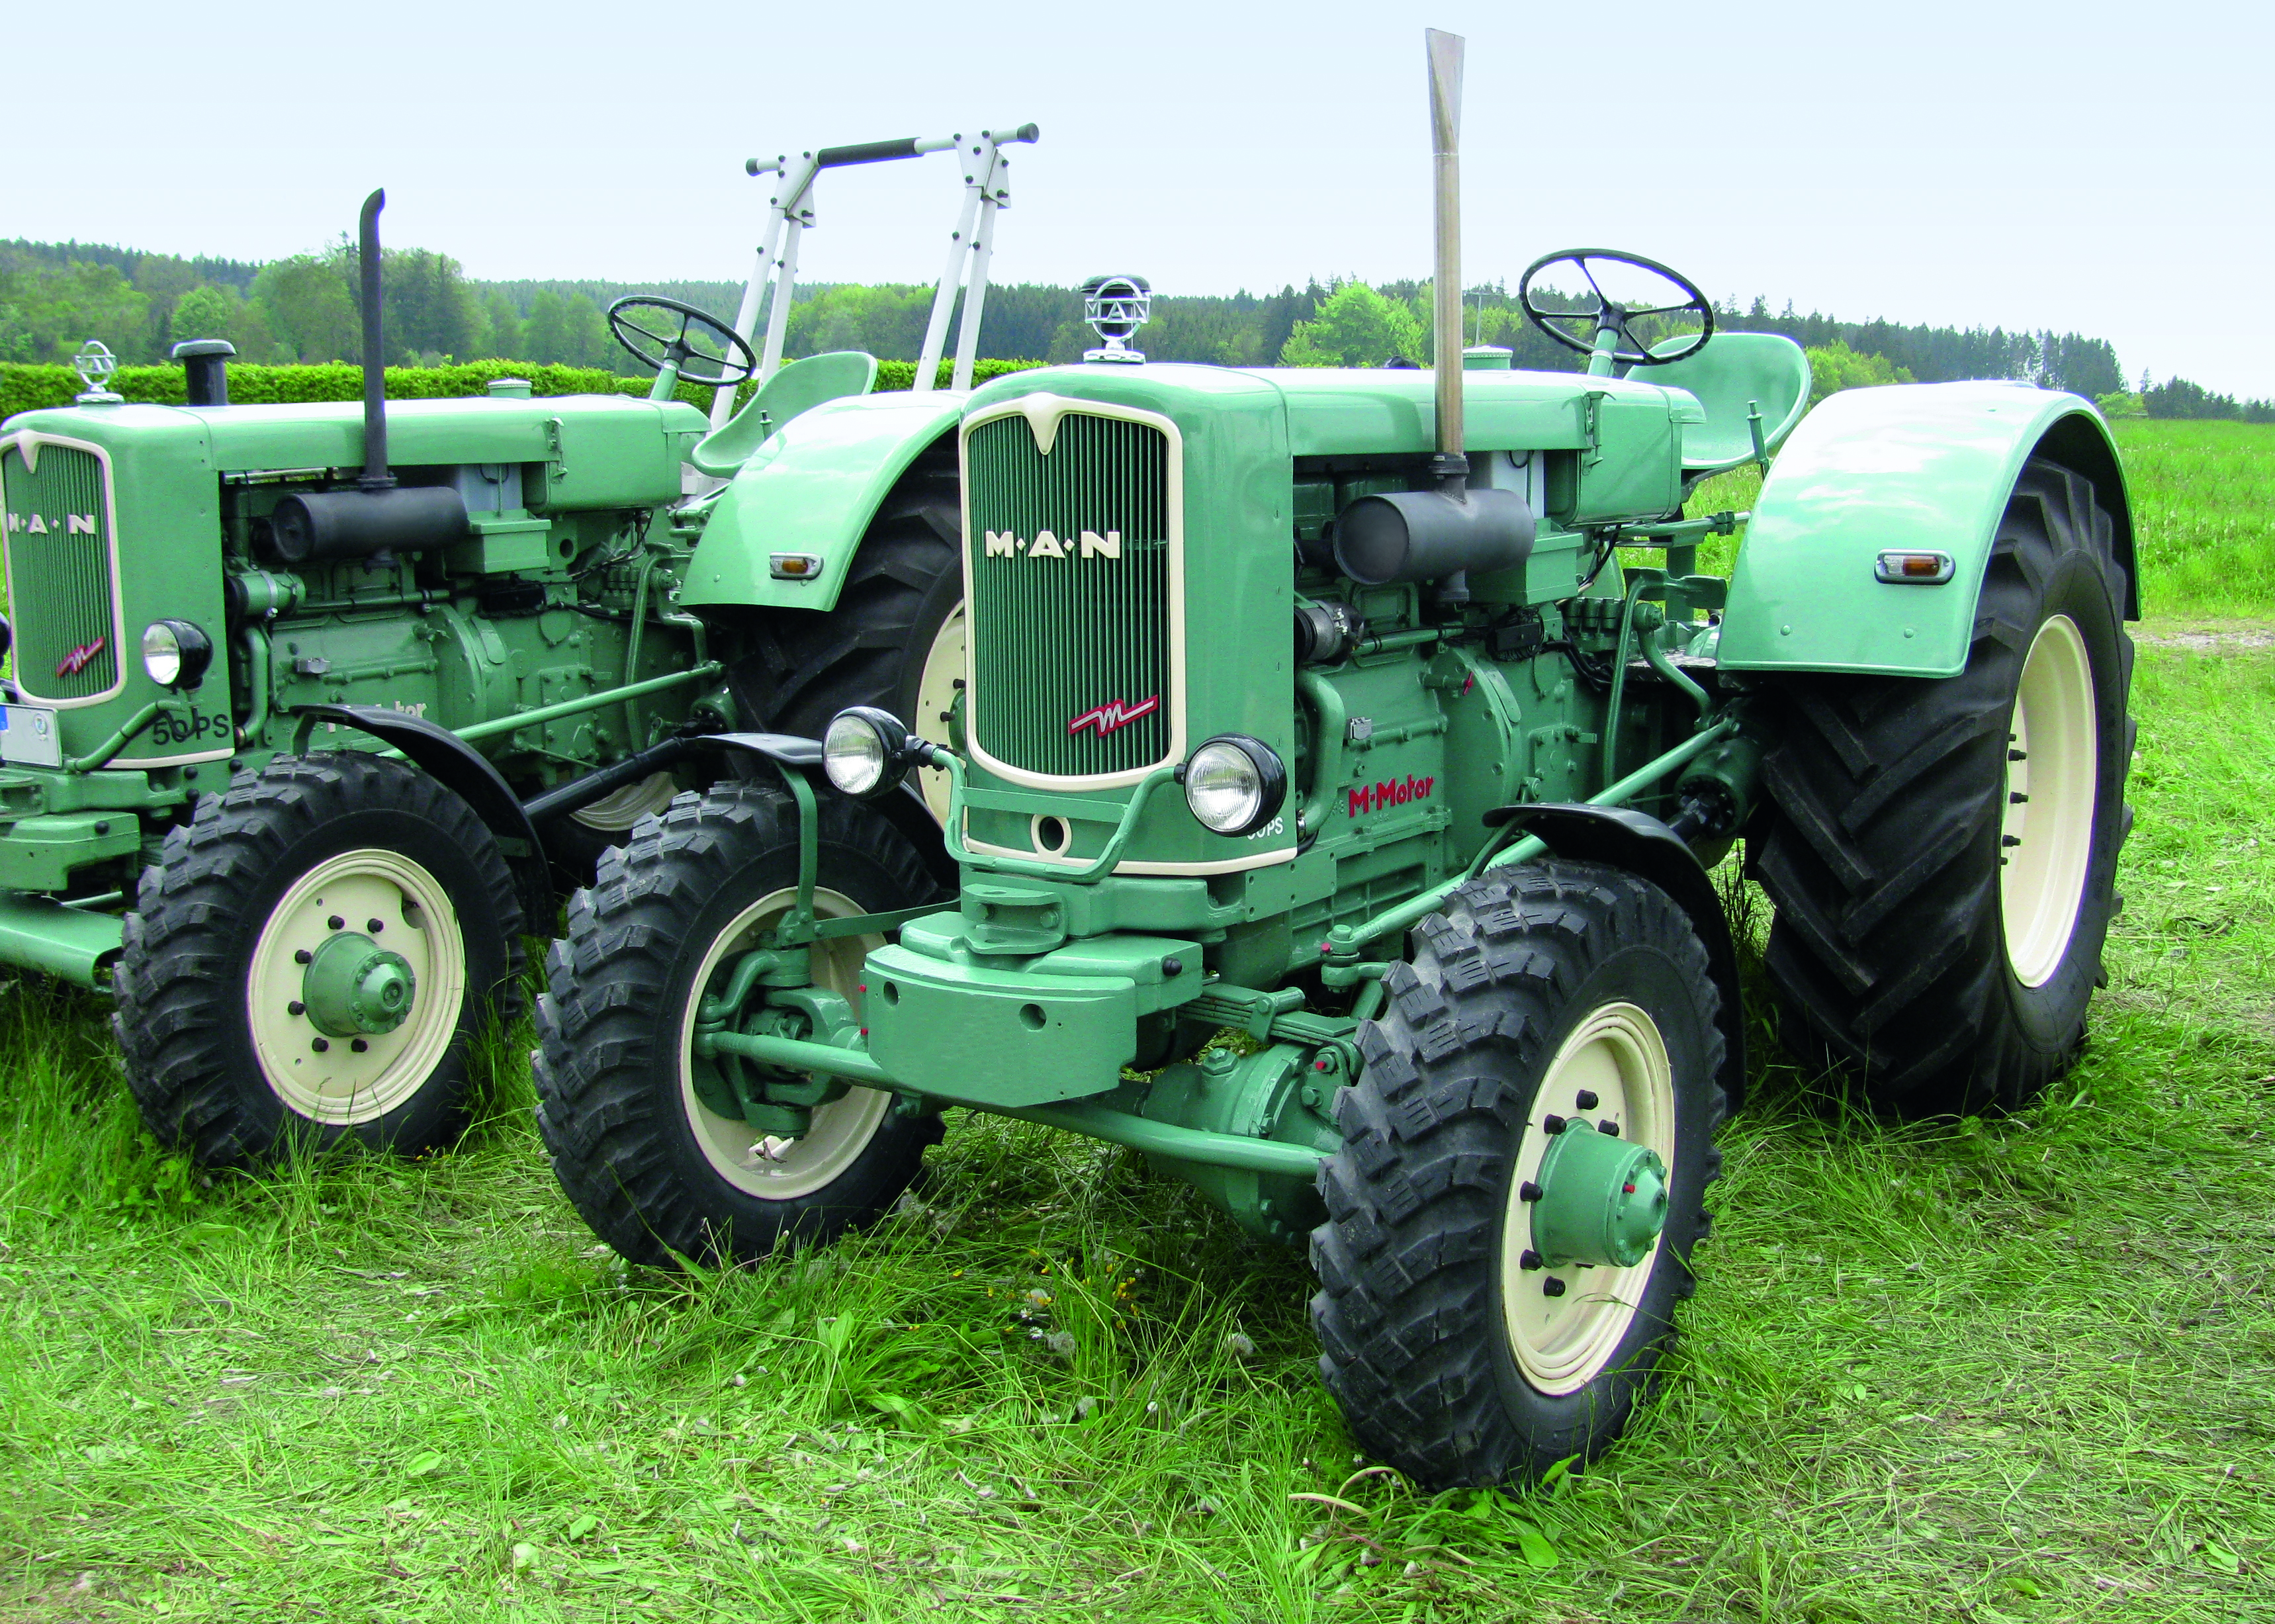 MAN milestones in agricultural technology   MAN Engines